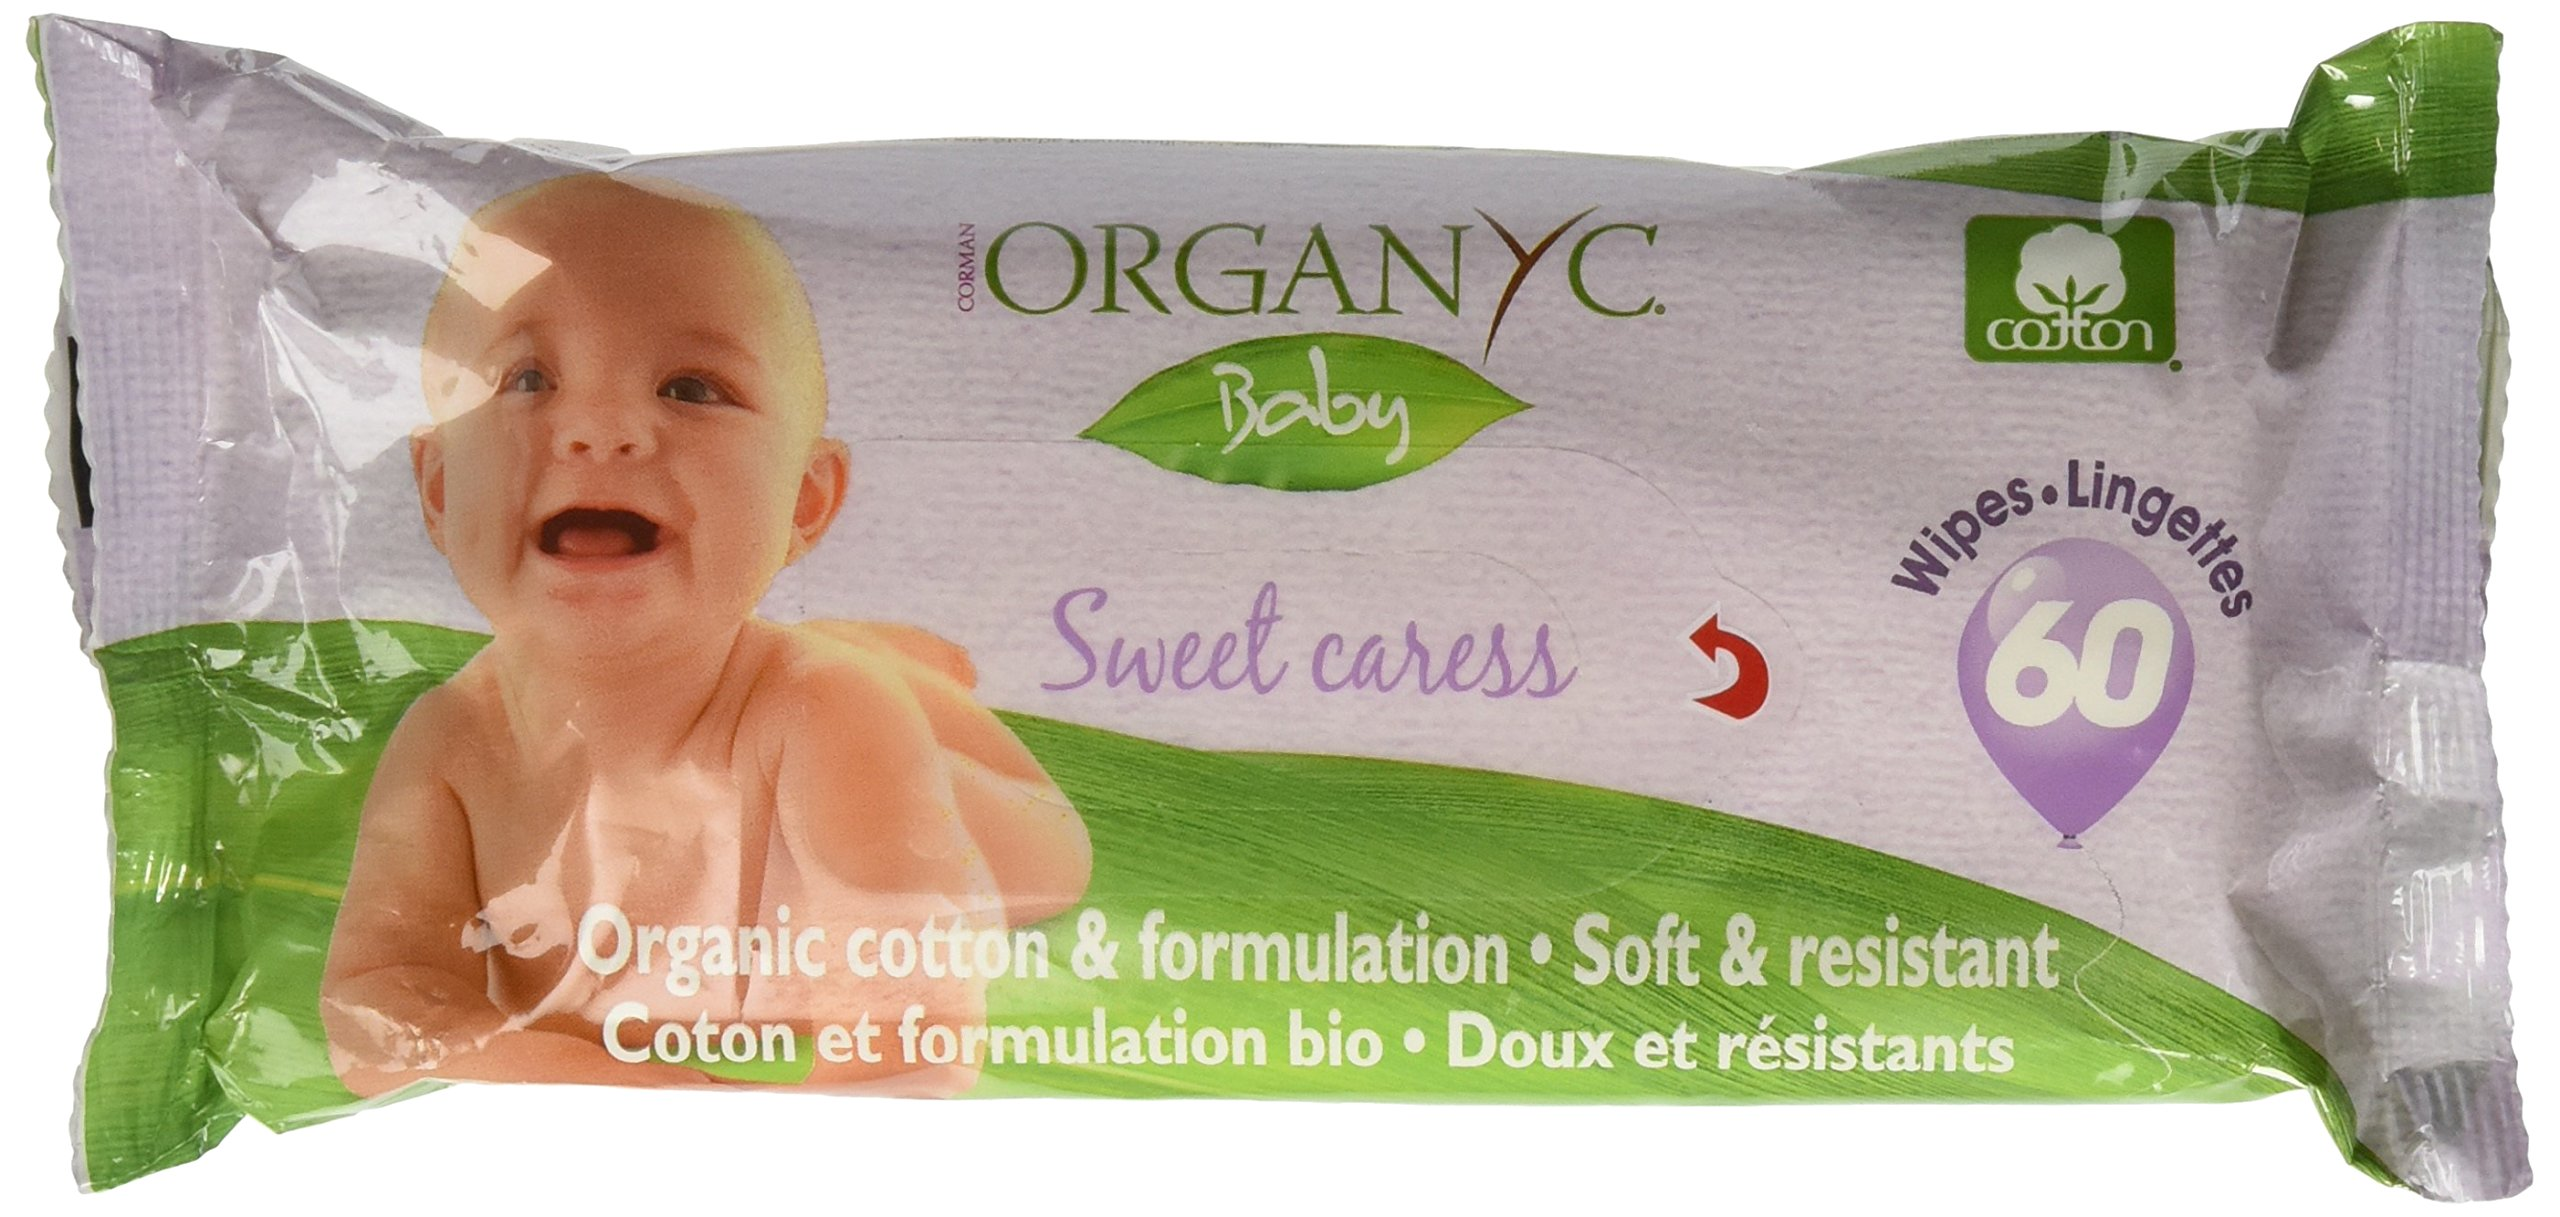 Organyc 100% Organic Cotton Baby Wipes for Sensitive Skin, 60 Count (Pack of 12)